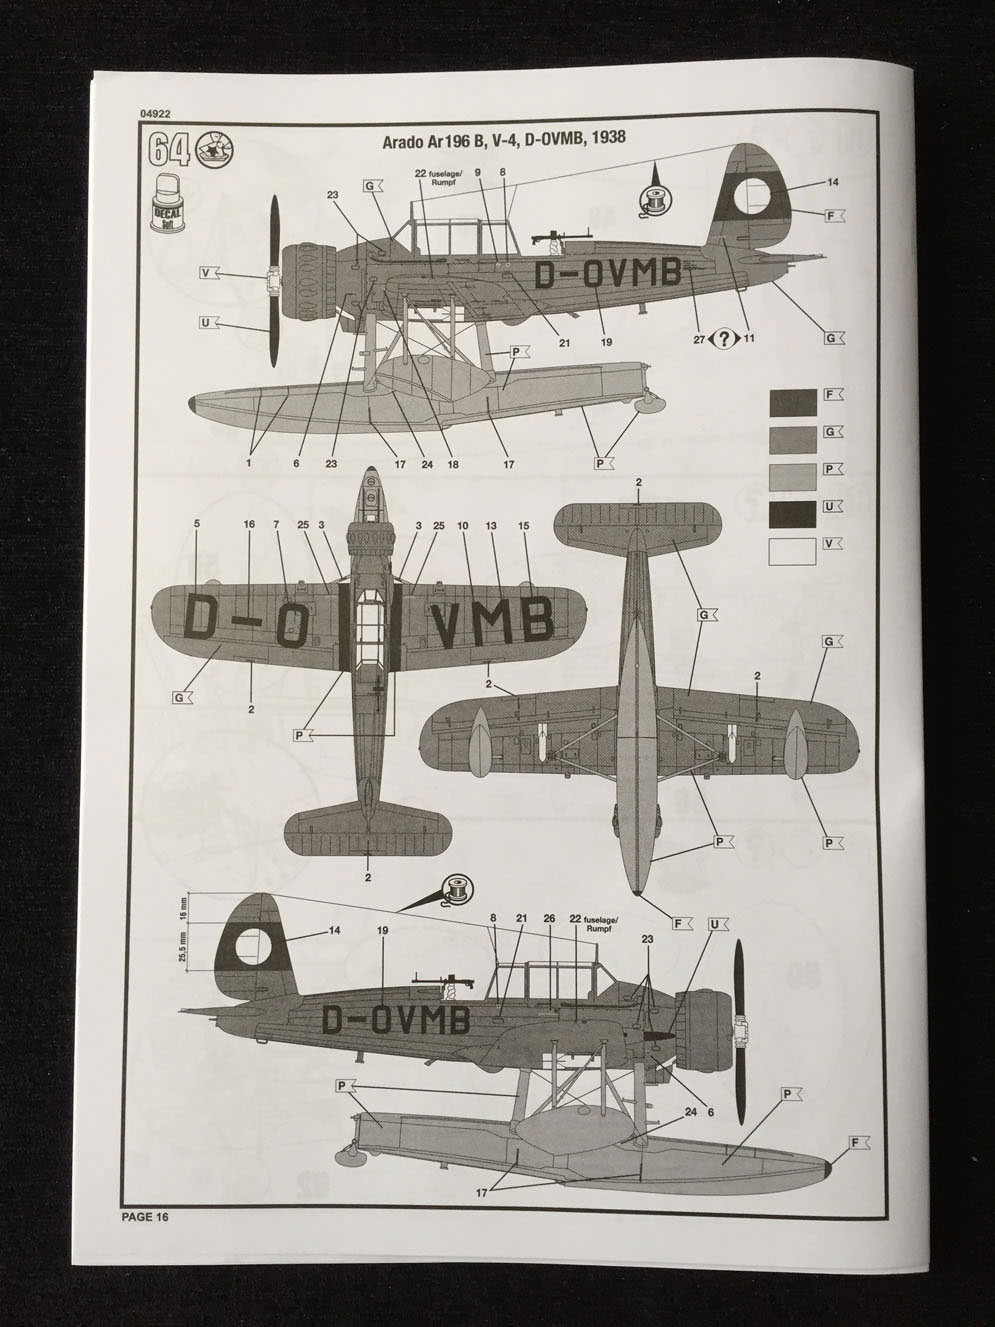 Revell Arado Ar 196B Seaplane 1:32 - Page 3 of 3 - Scale Modelling Now